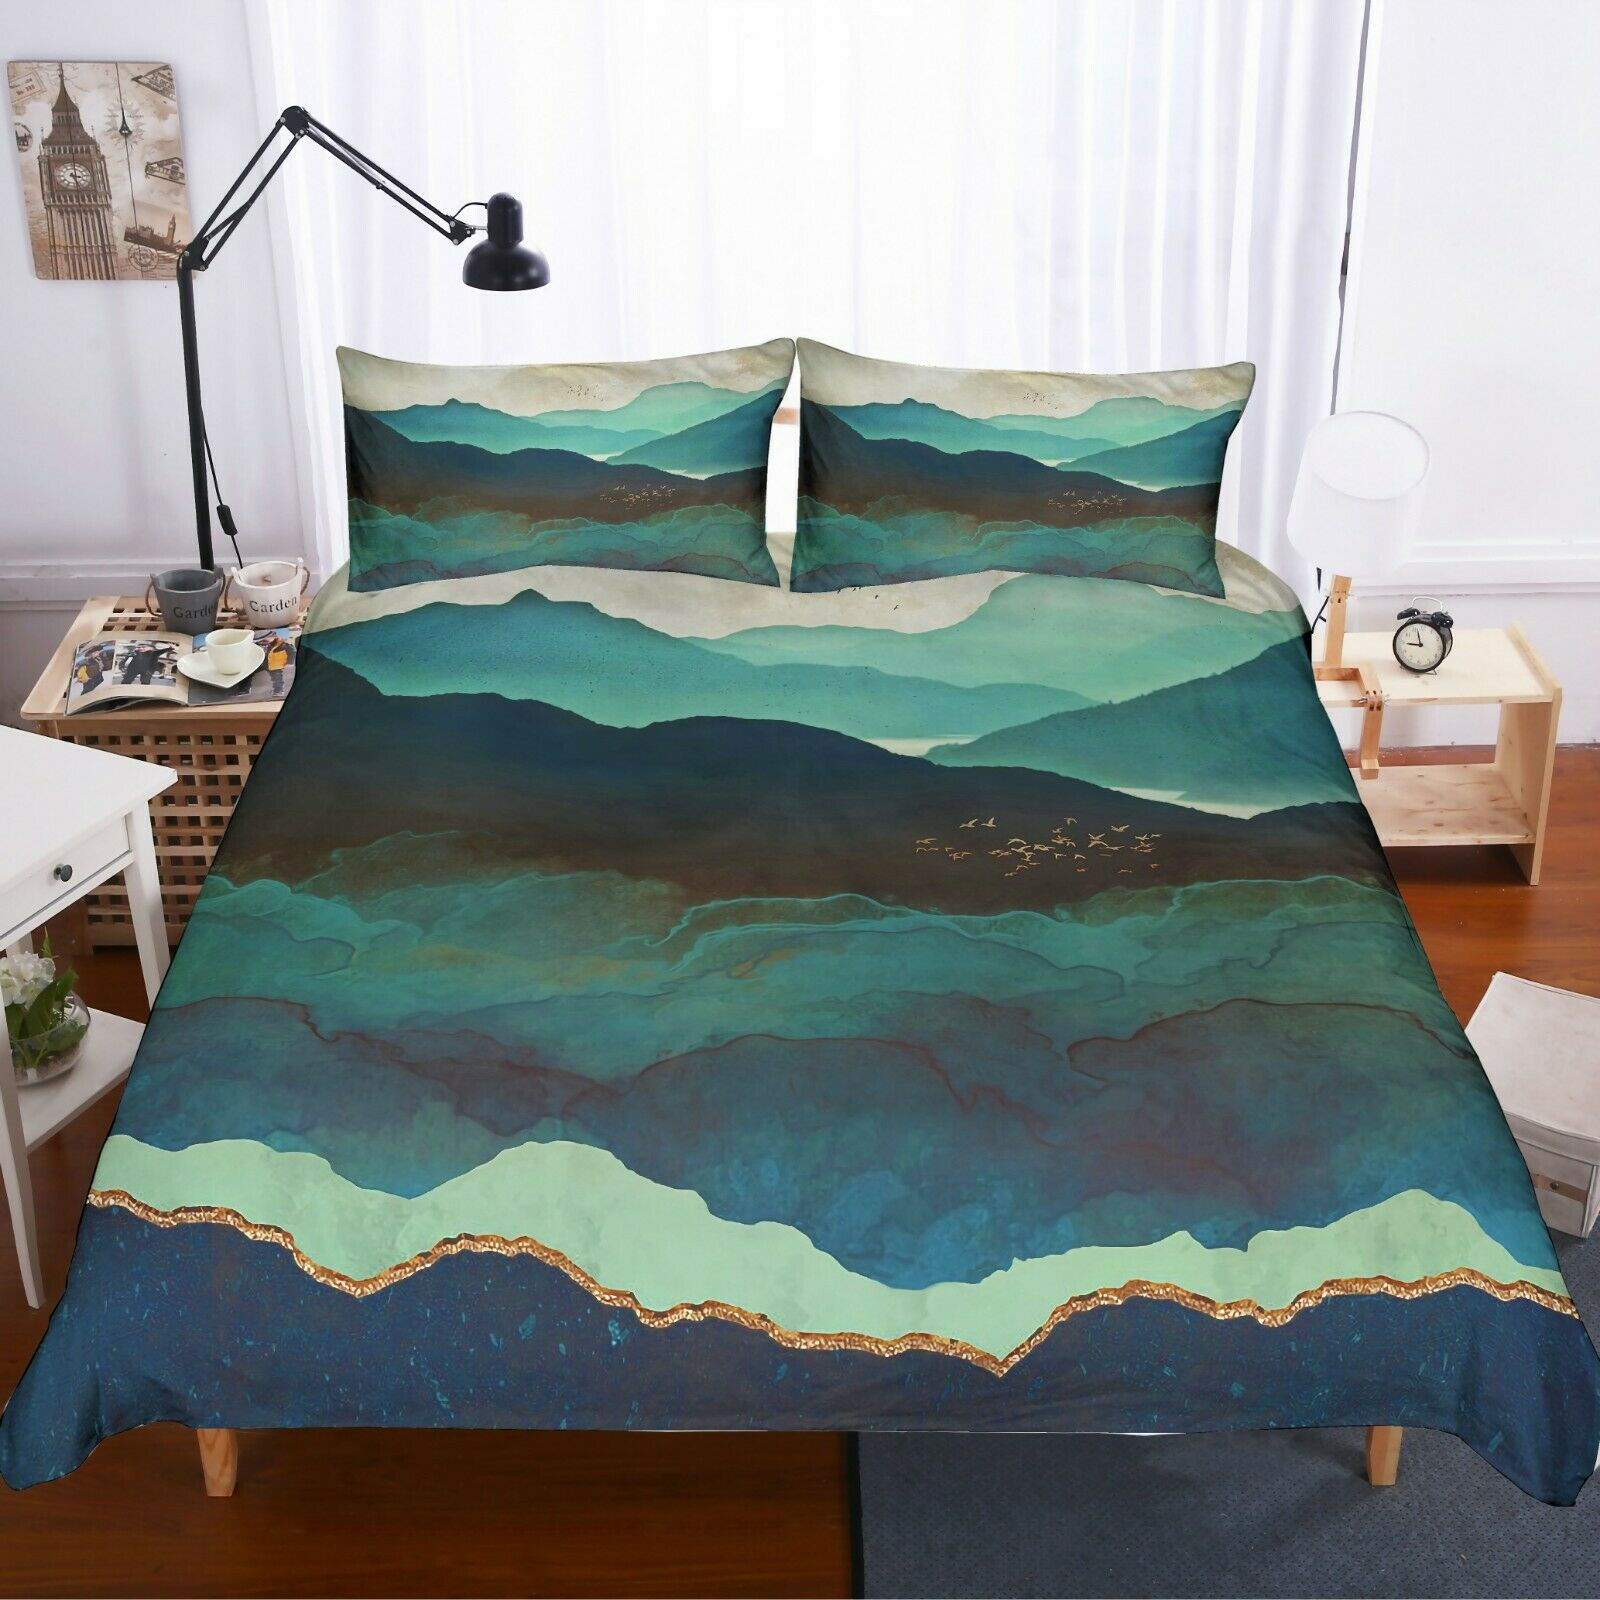 3D Abstract WaterFarbe Mountains Quilt Startseite Set Bettding Duvet Startseite Pillow 11